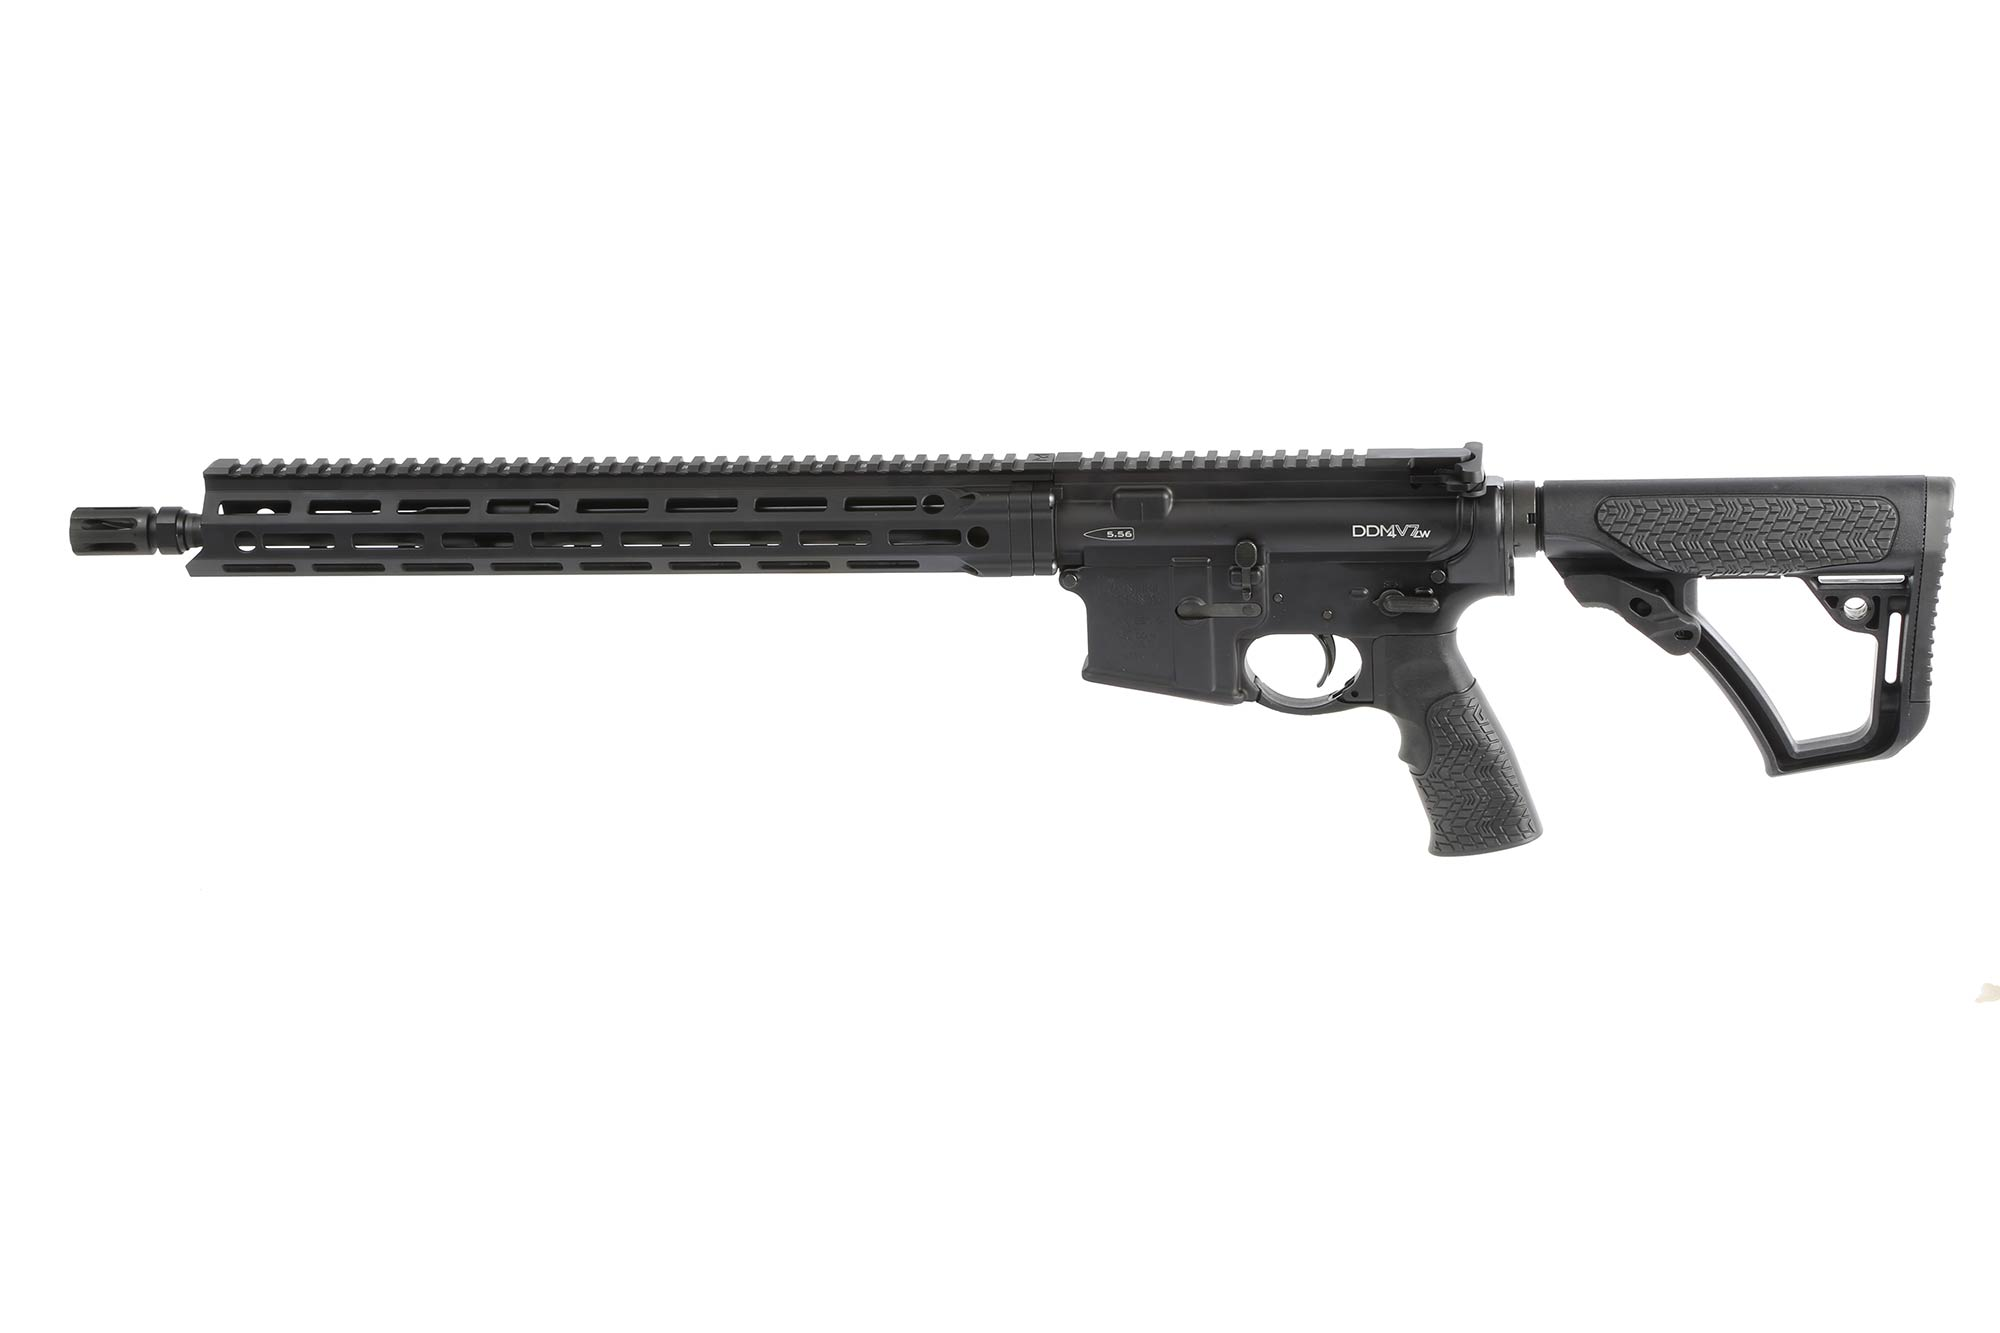 The Daniel Defense DDM4v7 AR15 features the MFR XS M-LOK handguard